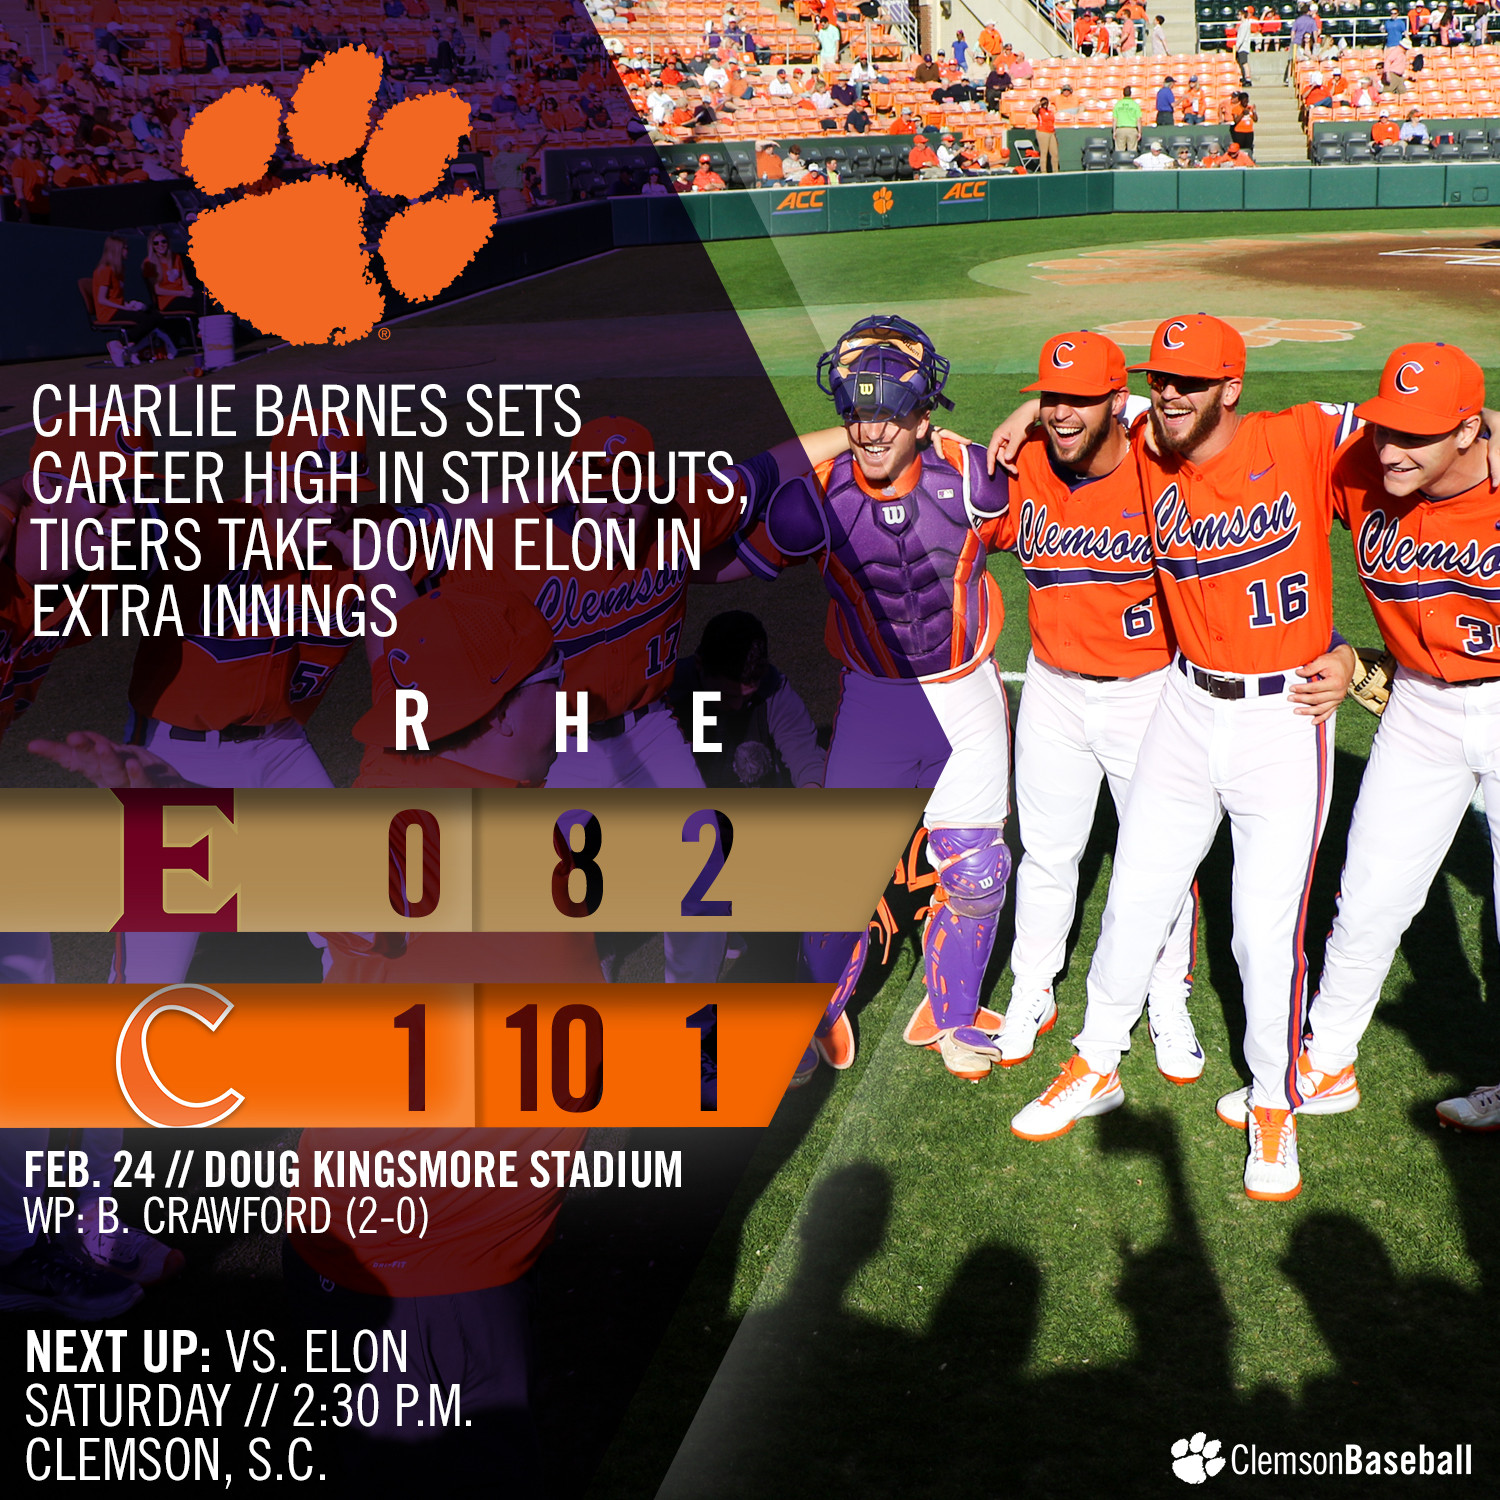 Tigers Edge Elon 1-0 in 13